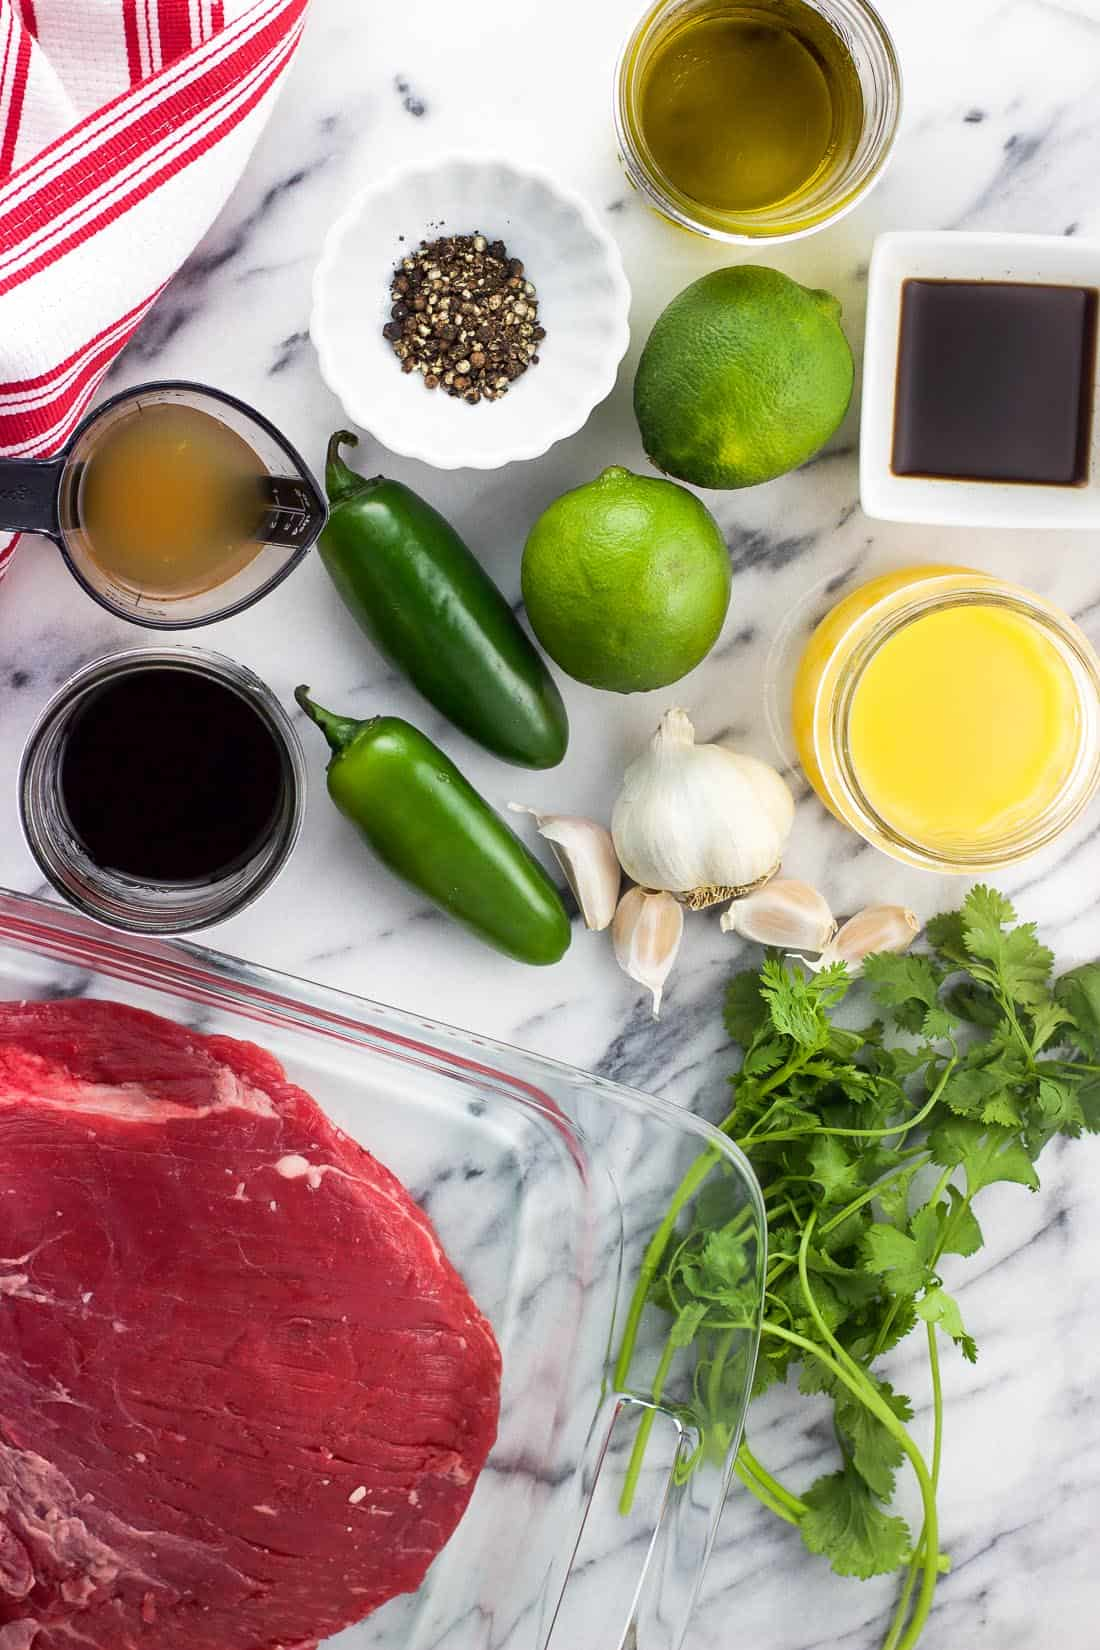 An overhead shot of the carne asada marinade ingredients on a marble board